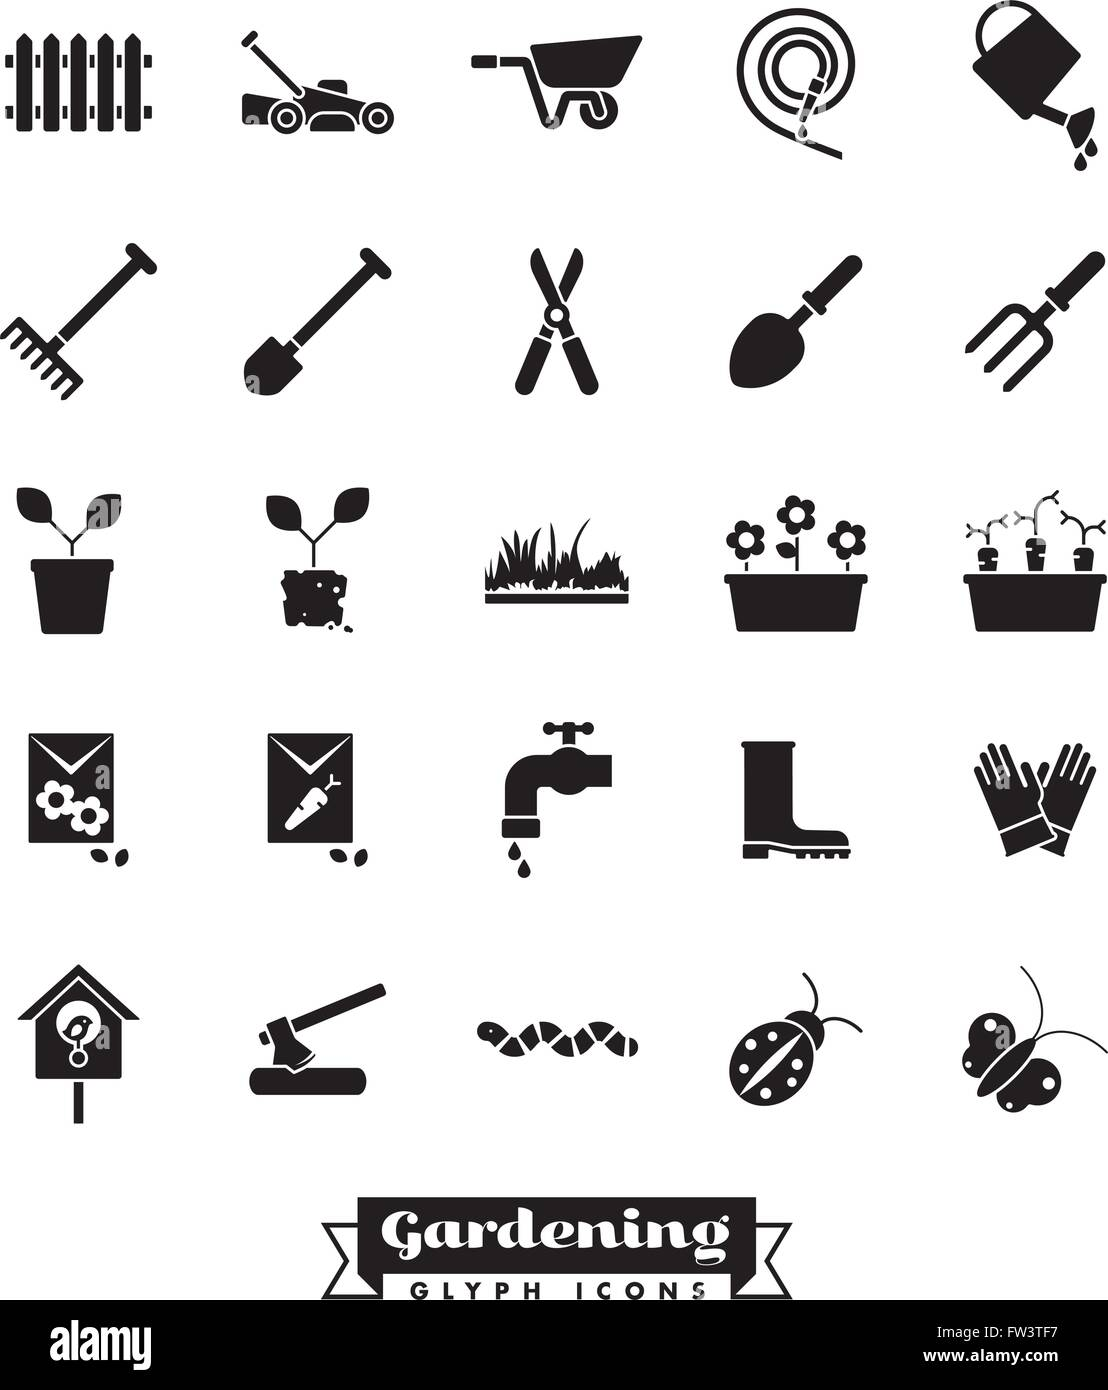 Gardening glyph icons collection - Stock Image